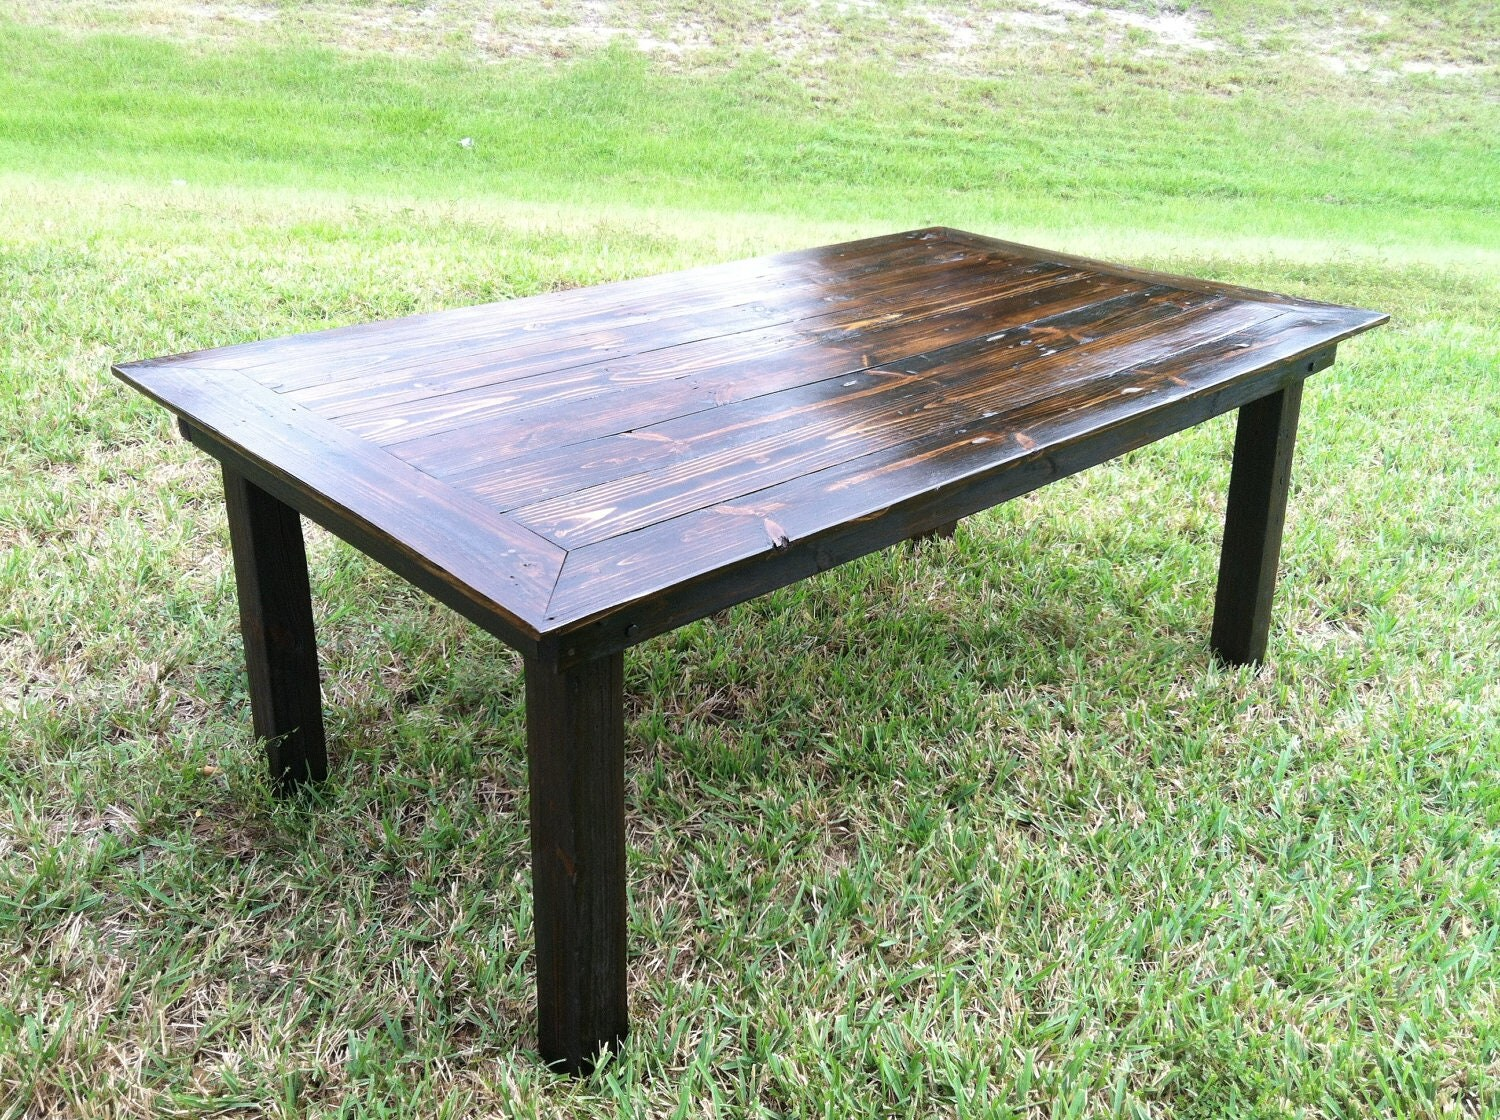 Handmade wooden dining tables handmade reclaimed wood dining table by famacreations on etsy - Handmade wooden dining tables ...